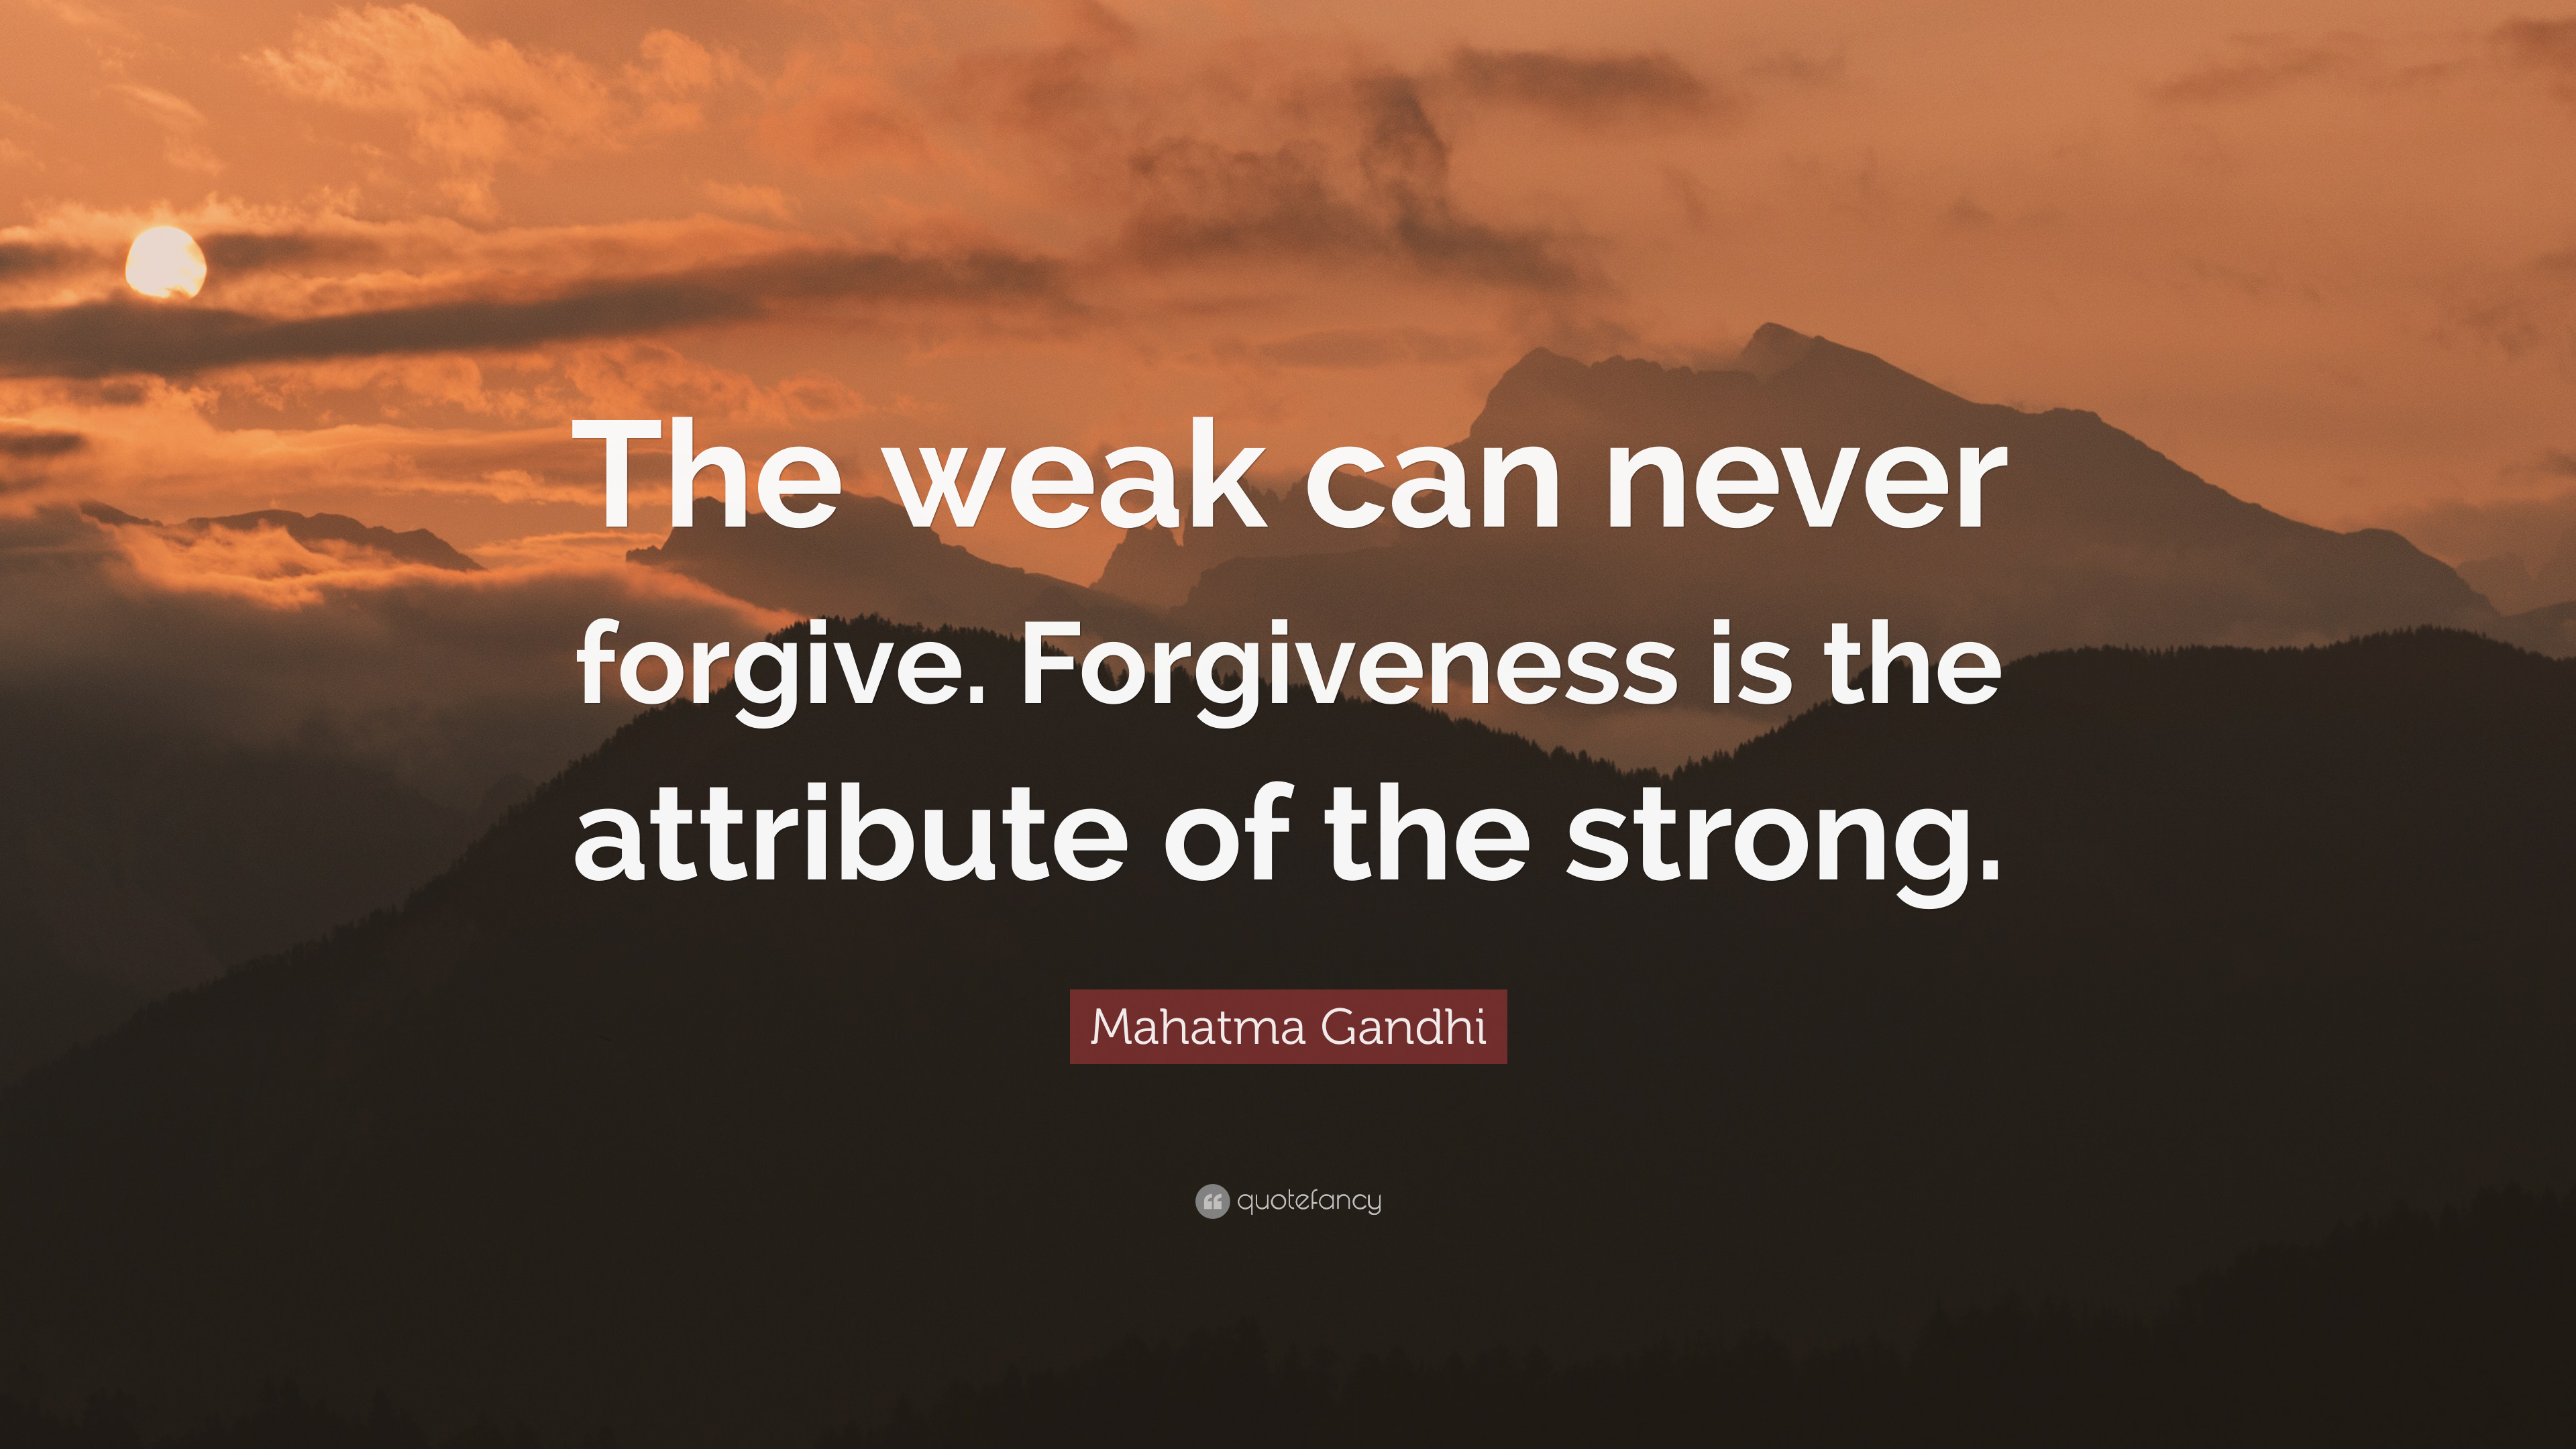 Landscape Quotes Forgiveness Quotes 40 Wallpapers  Quotefancy